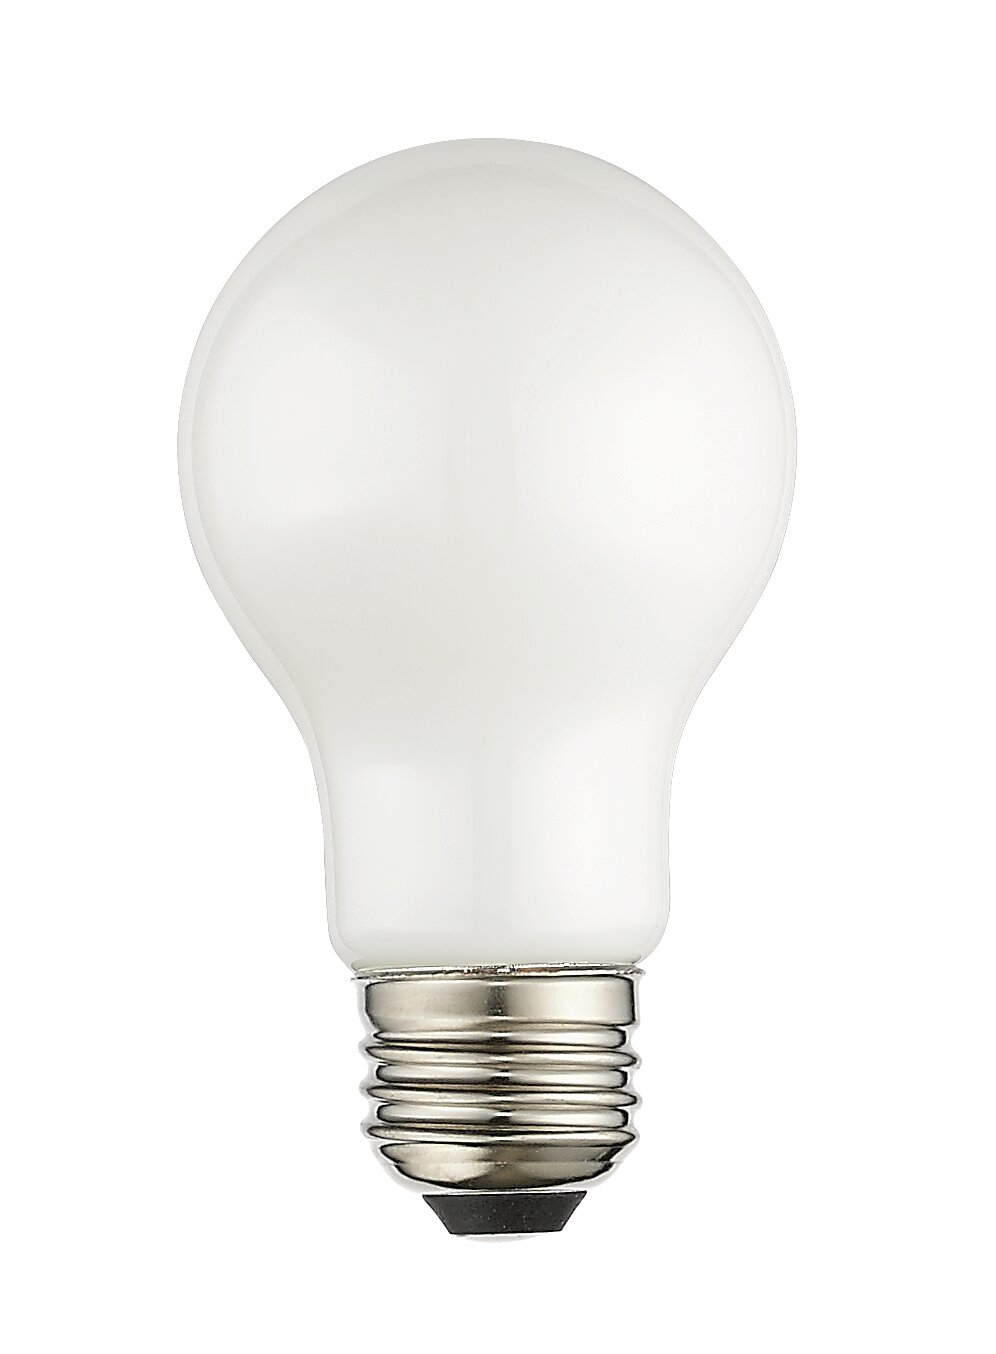 Livex Lighting 8W Equivalent E26 LED Standard Light Bulb | Wayfair Nice Ideas